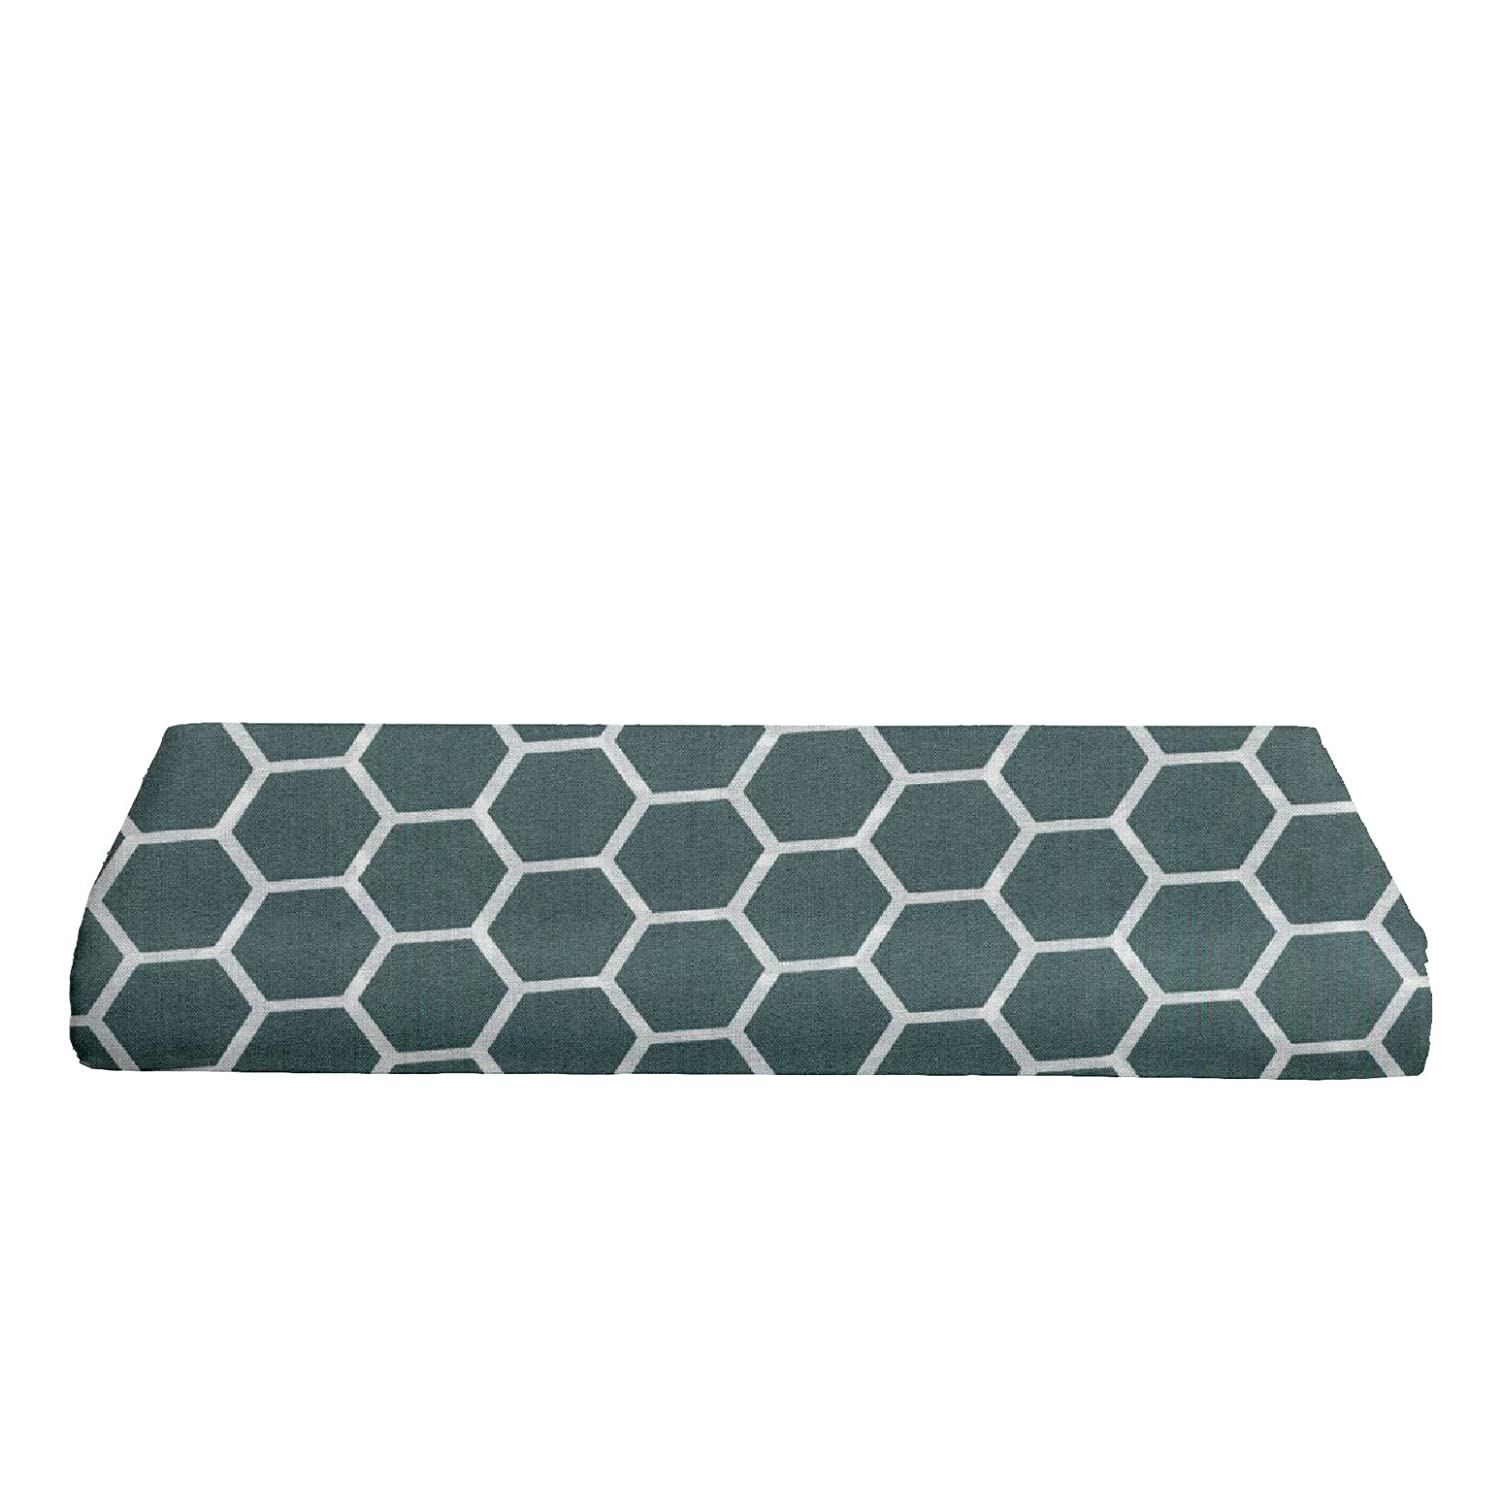 Honeycomb Spa Blue BKB Changing Pad Cover